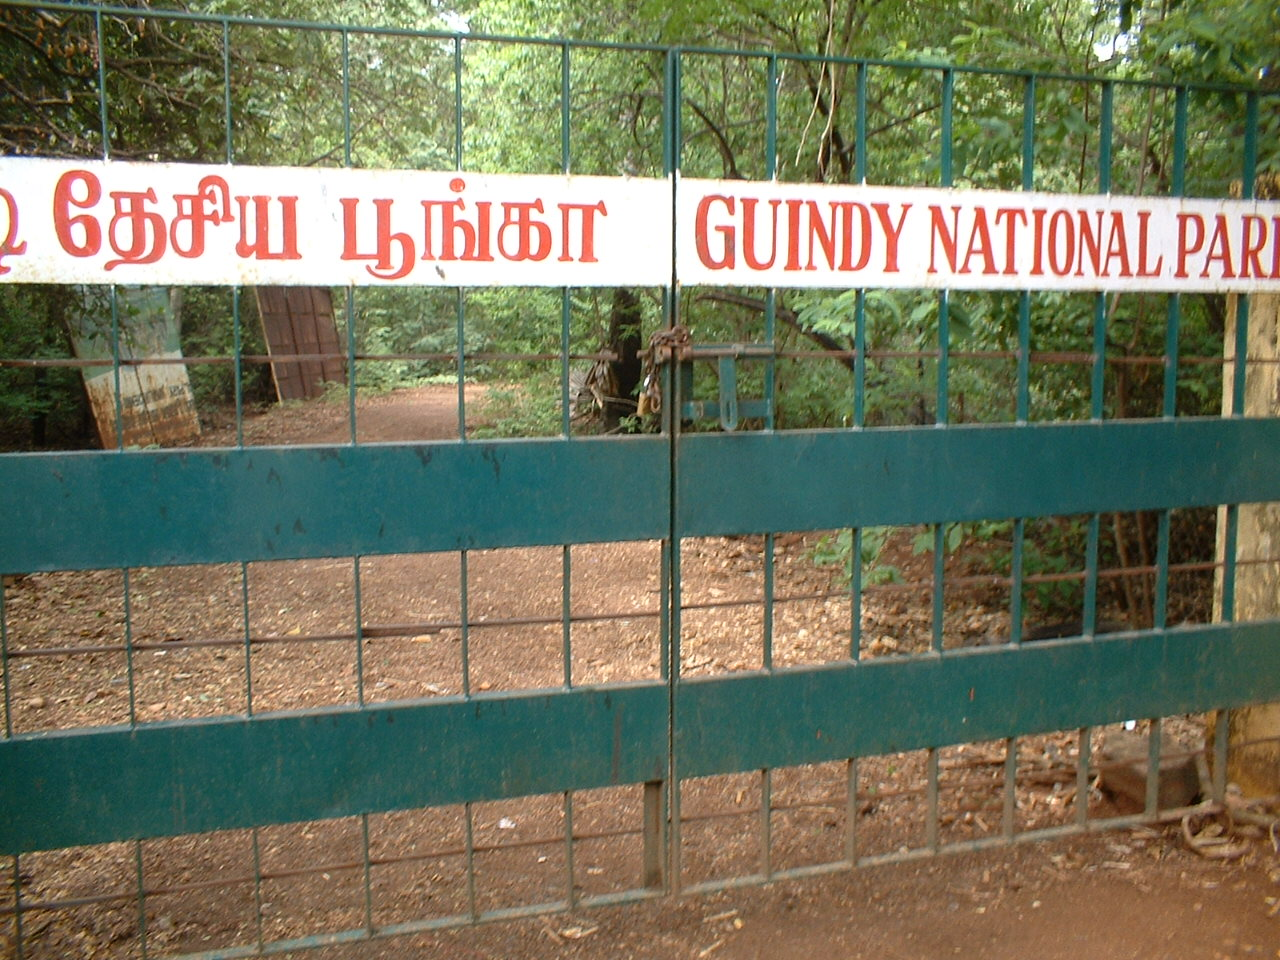 Parc national de Guindy